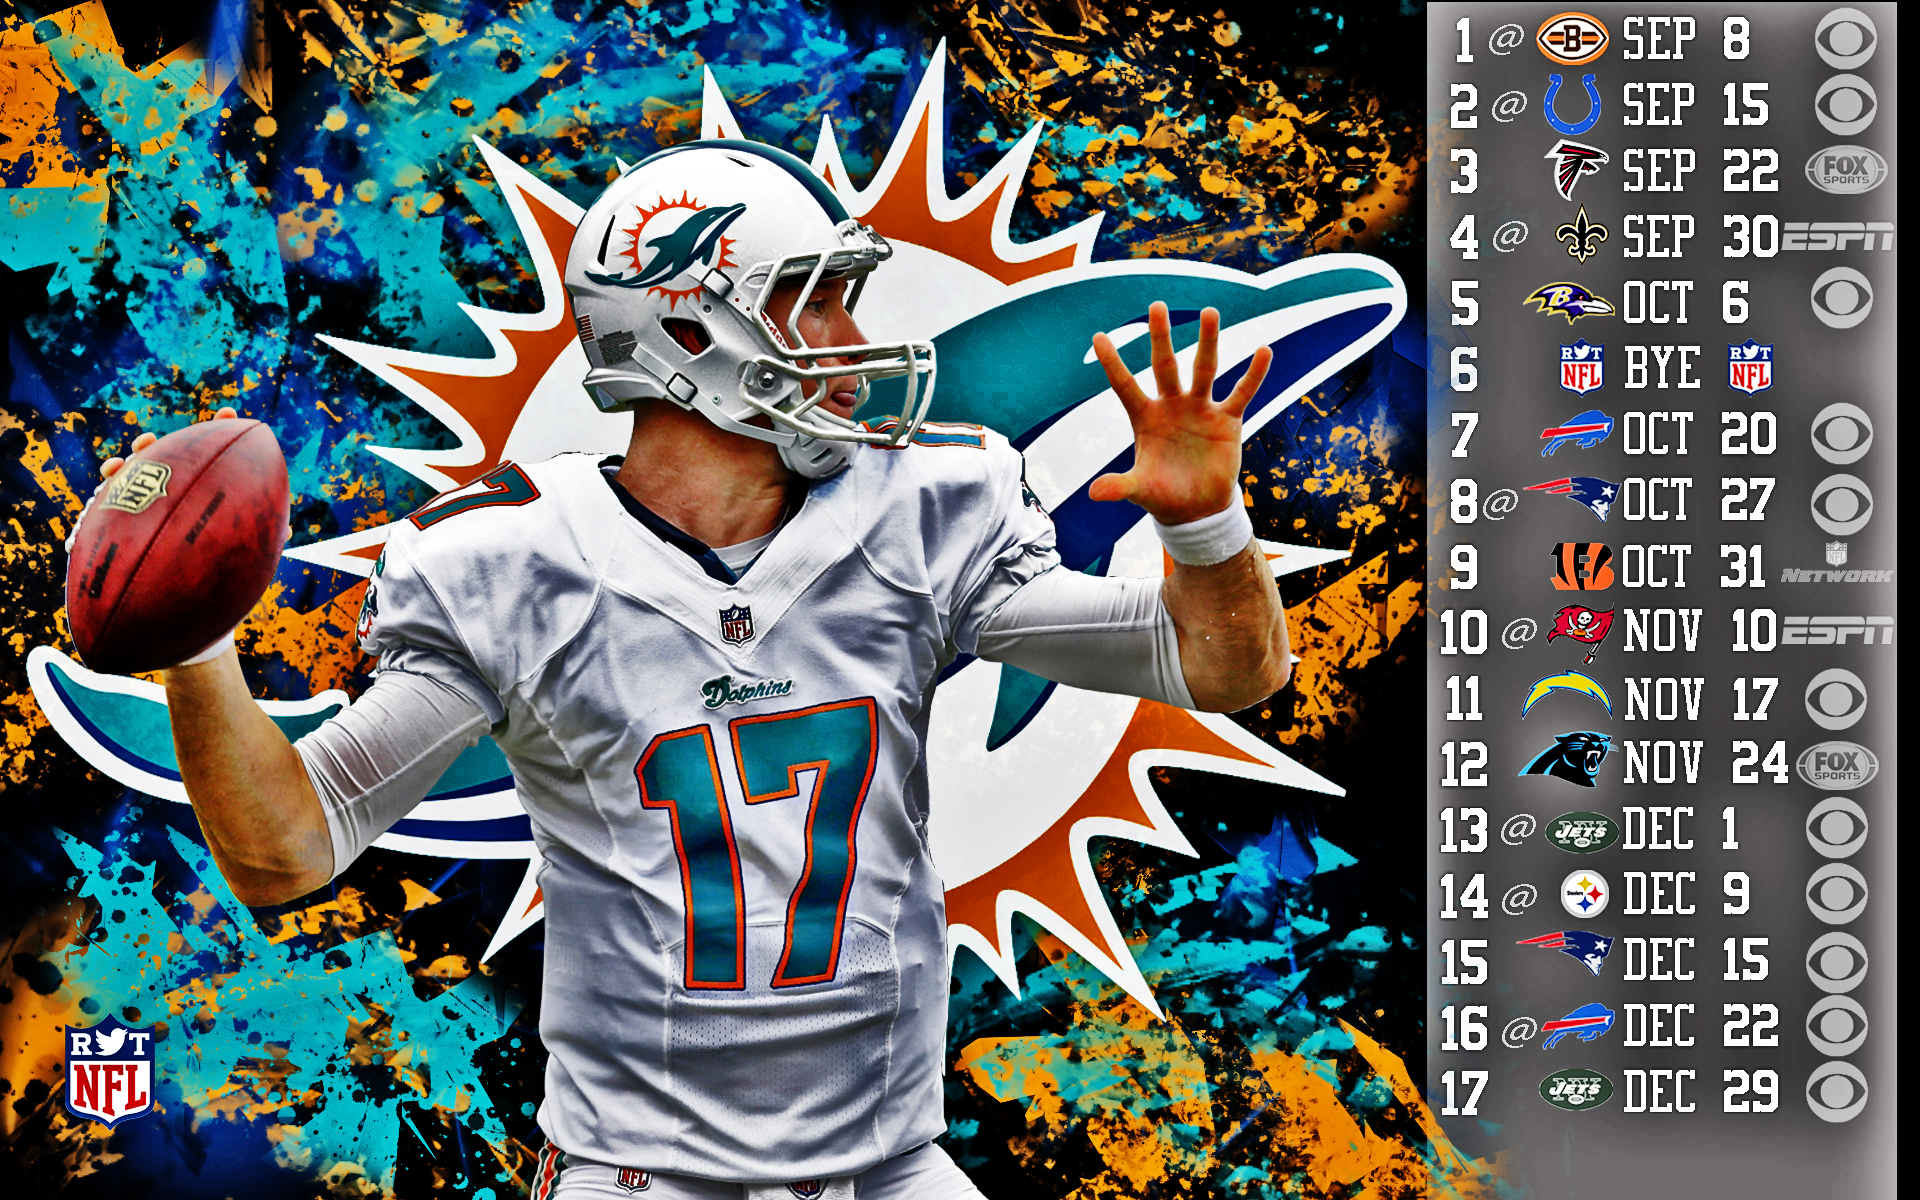 2013 Miami Dolphins football nfl wallpaper background 1920x1200